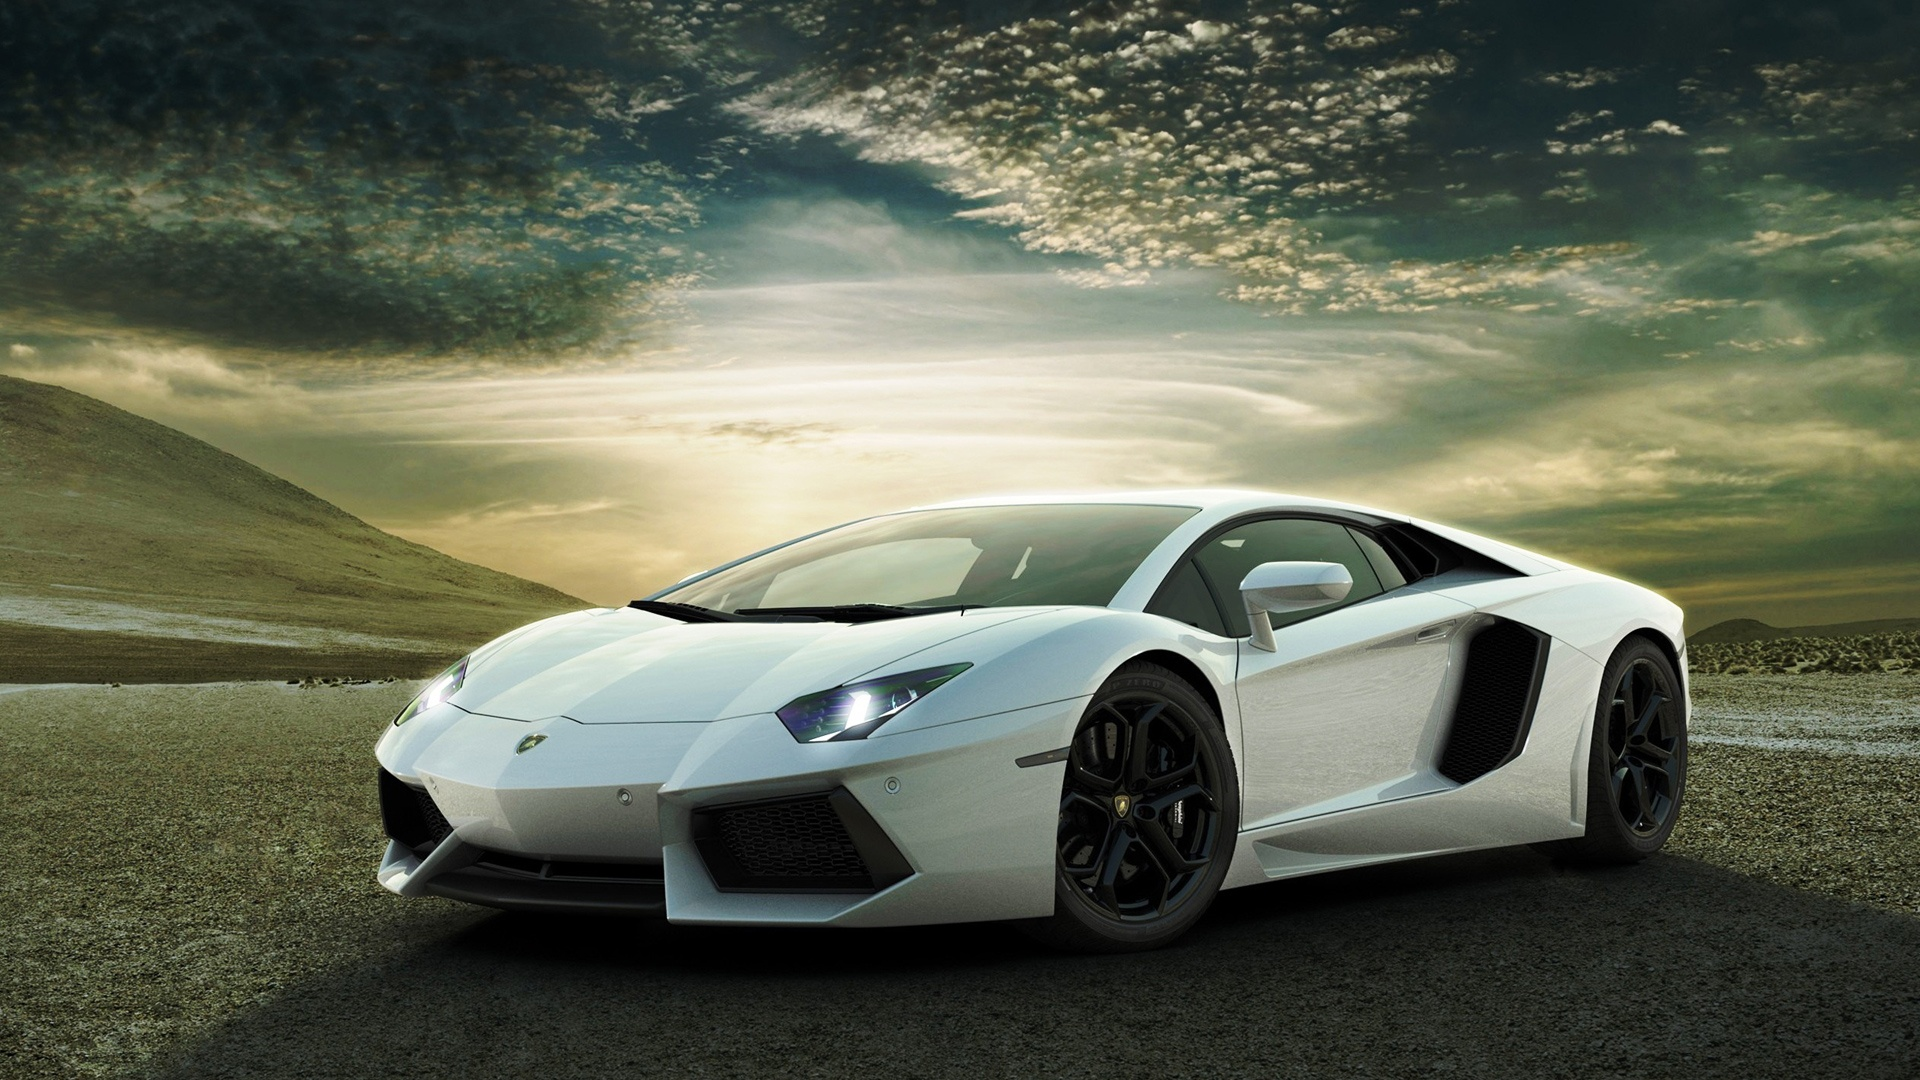 Lamborghini Aventador Wallpapers HD Wallpapers Desktop 1920x1080 1920x1080